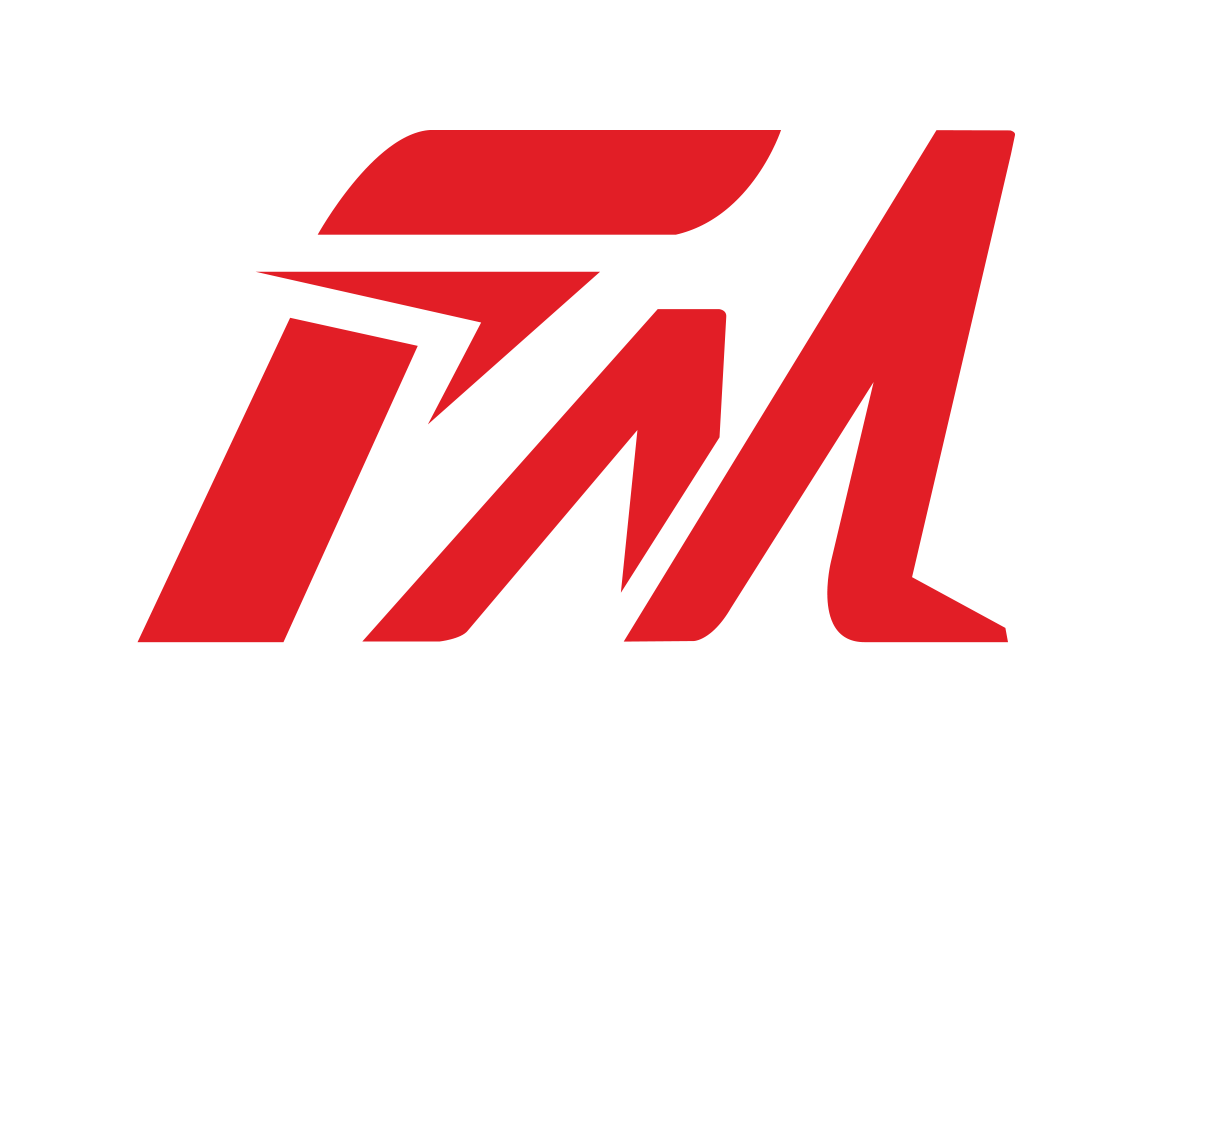 FITNESS MOVEMENT GYM